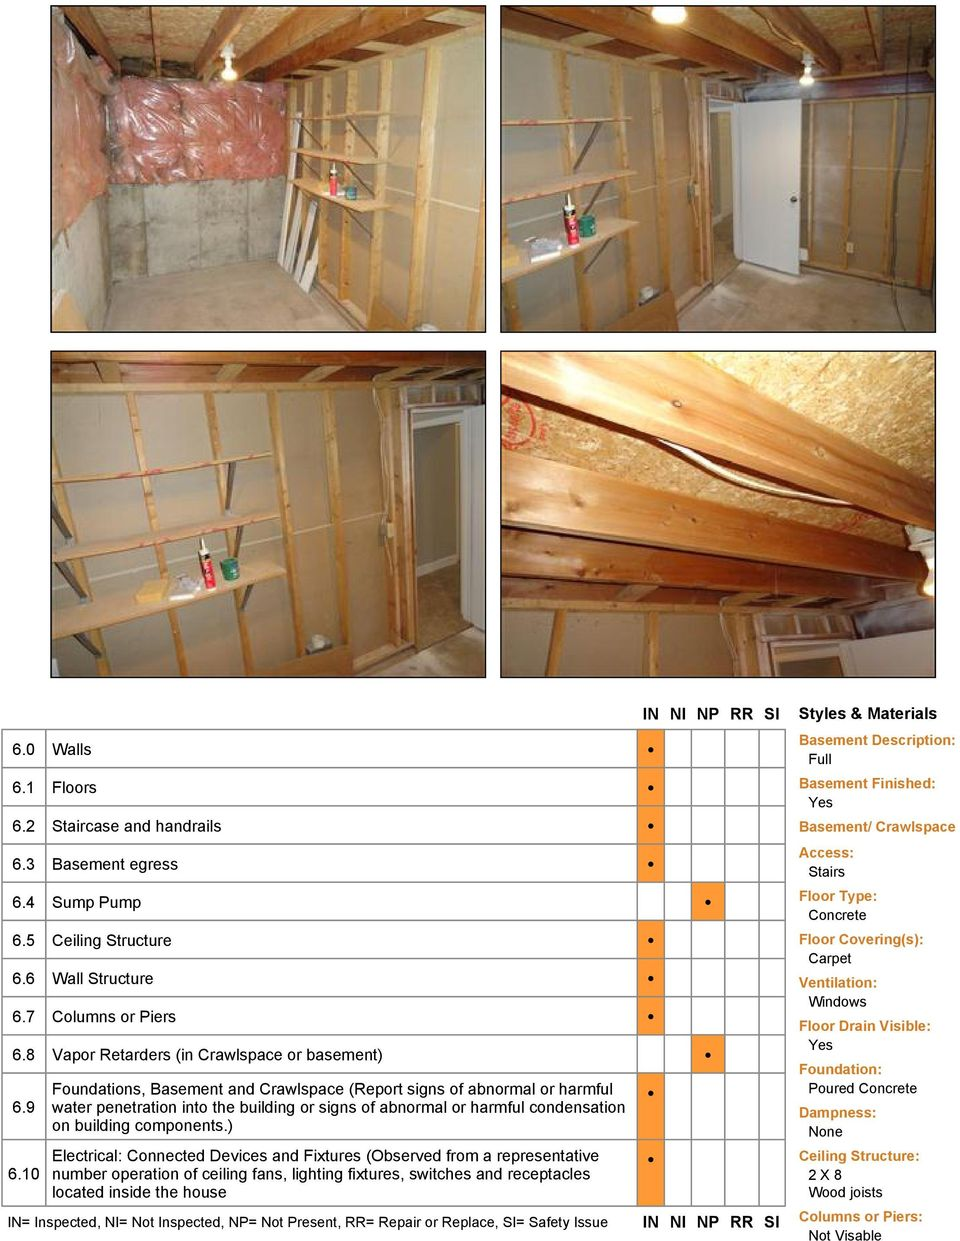 10 Foundations, Basement and Crawlspace (Report signs of abnormal or harmful water penetration into the building or signs of abnormal or harmful condensation on building components.